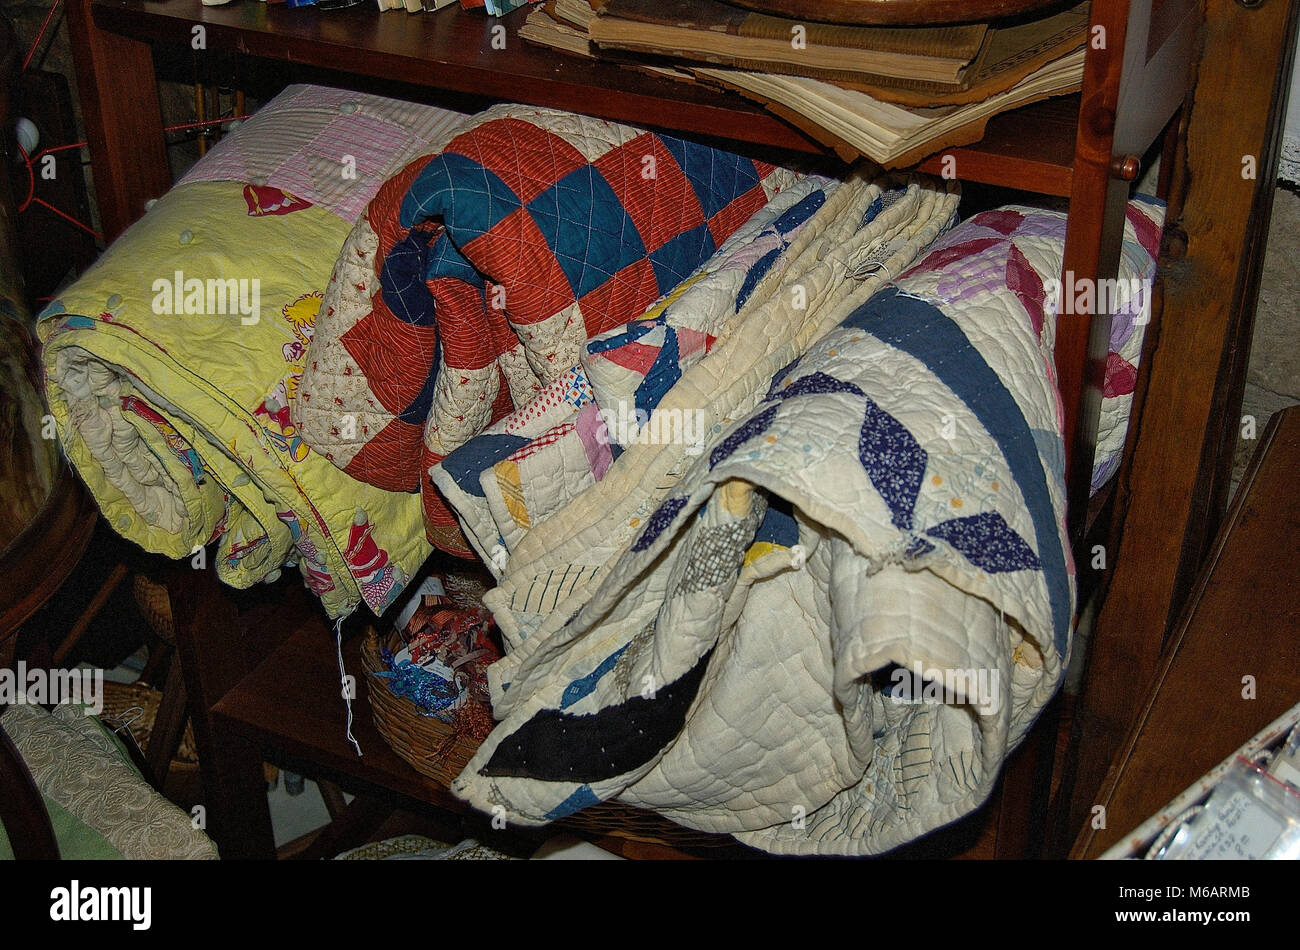 Antique vintage blankets stored on shelf Stock Photo